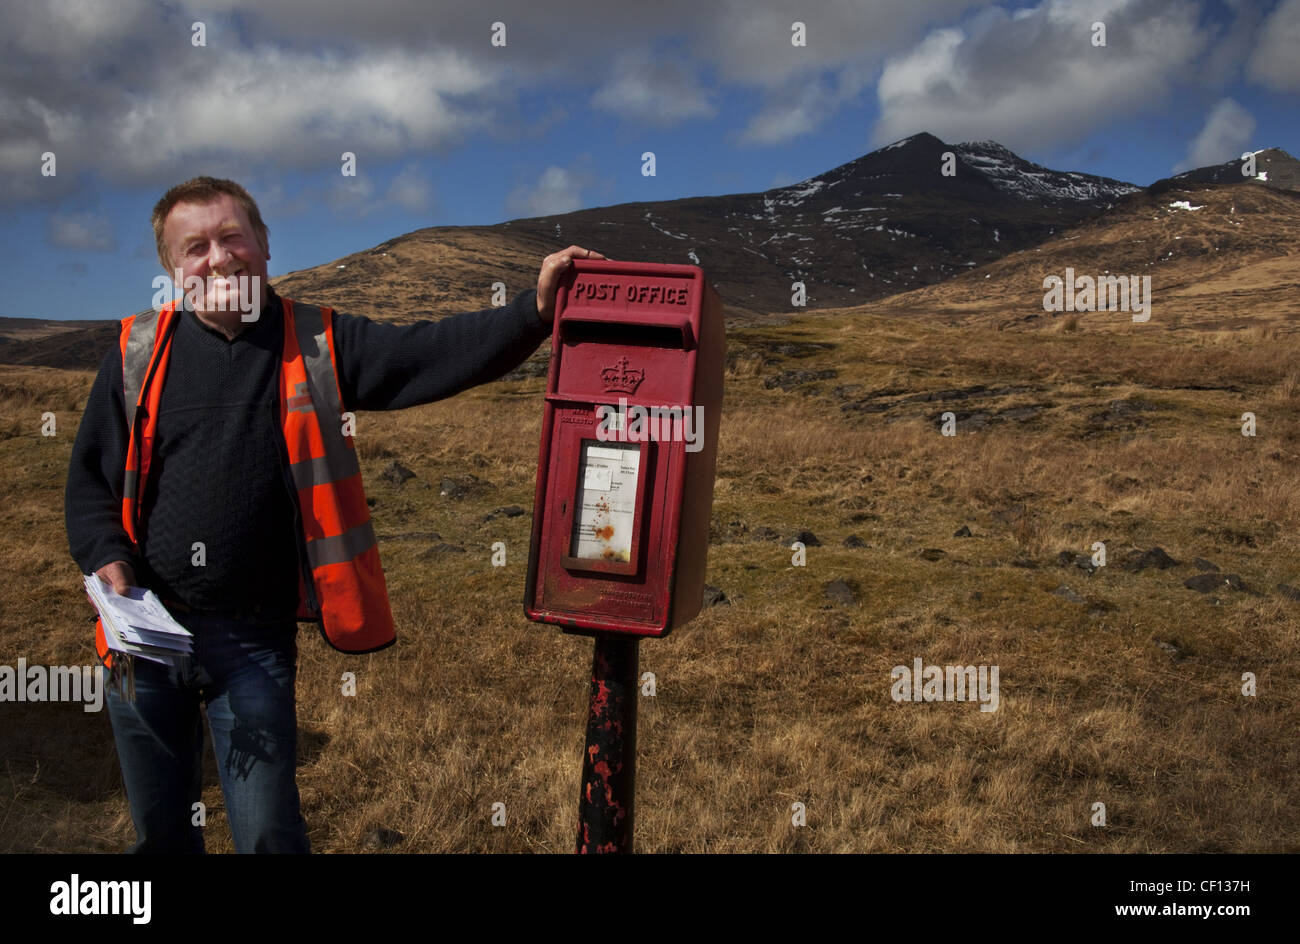 Alastair,Isle,Of,Mull,Postie,postman,western,Scotland,UK,gotonysmith,rural,country,countryside,round,van,royal,mail,post,office,red,box,pillar,pillarbox,grass,mountains,collect,collecting,letters,empty,emptying,smile,face,smiling,man,woman,gotonysmith,Buy Pictures of,Buy Images Of,The Isle of Mull or simply Mull (Scottish Gaelic Muile,pronounced,) is the second largest island of the Inner Hebrides,off,the,west,coast,of,Scotland,in,the,council,area,of,Argyll,and,Bute.,With,an,area,of,875.35,square,kilometres,(337.97,sq,mi),Mull,is,the,fourth,largest,Scottish,island,and,the,fourth,largest,island,surrounding,Great,Britain.,In,the,2001,census,the,usual,resident,population,of,Mull,was,2,667,in,the,summer,this,is,supplemented,by,many,tourists.,Much,of,the,population,lives,in,Tobermory,the only burgh on the island until 1973,and,its,capital.,Tobermory,is,also,home,to,Mulls,only,single,malt,Scotch,whisky,distillery,Tobermory (formerly Ledaig),ˈmulə